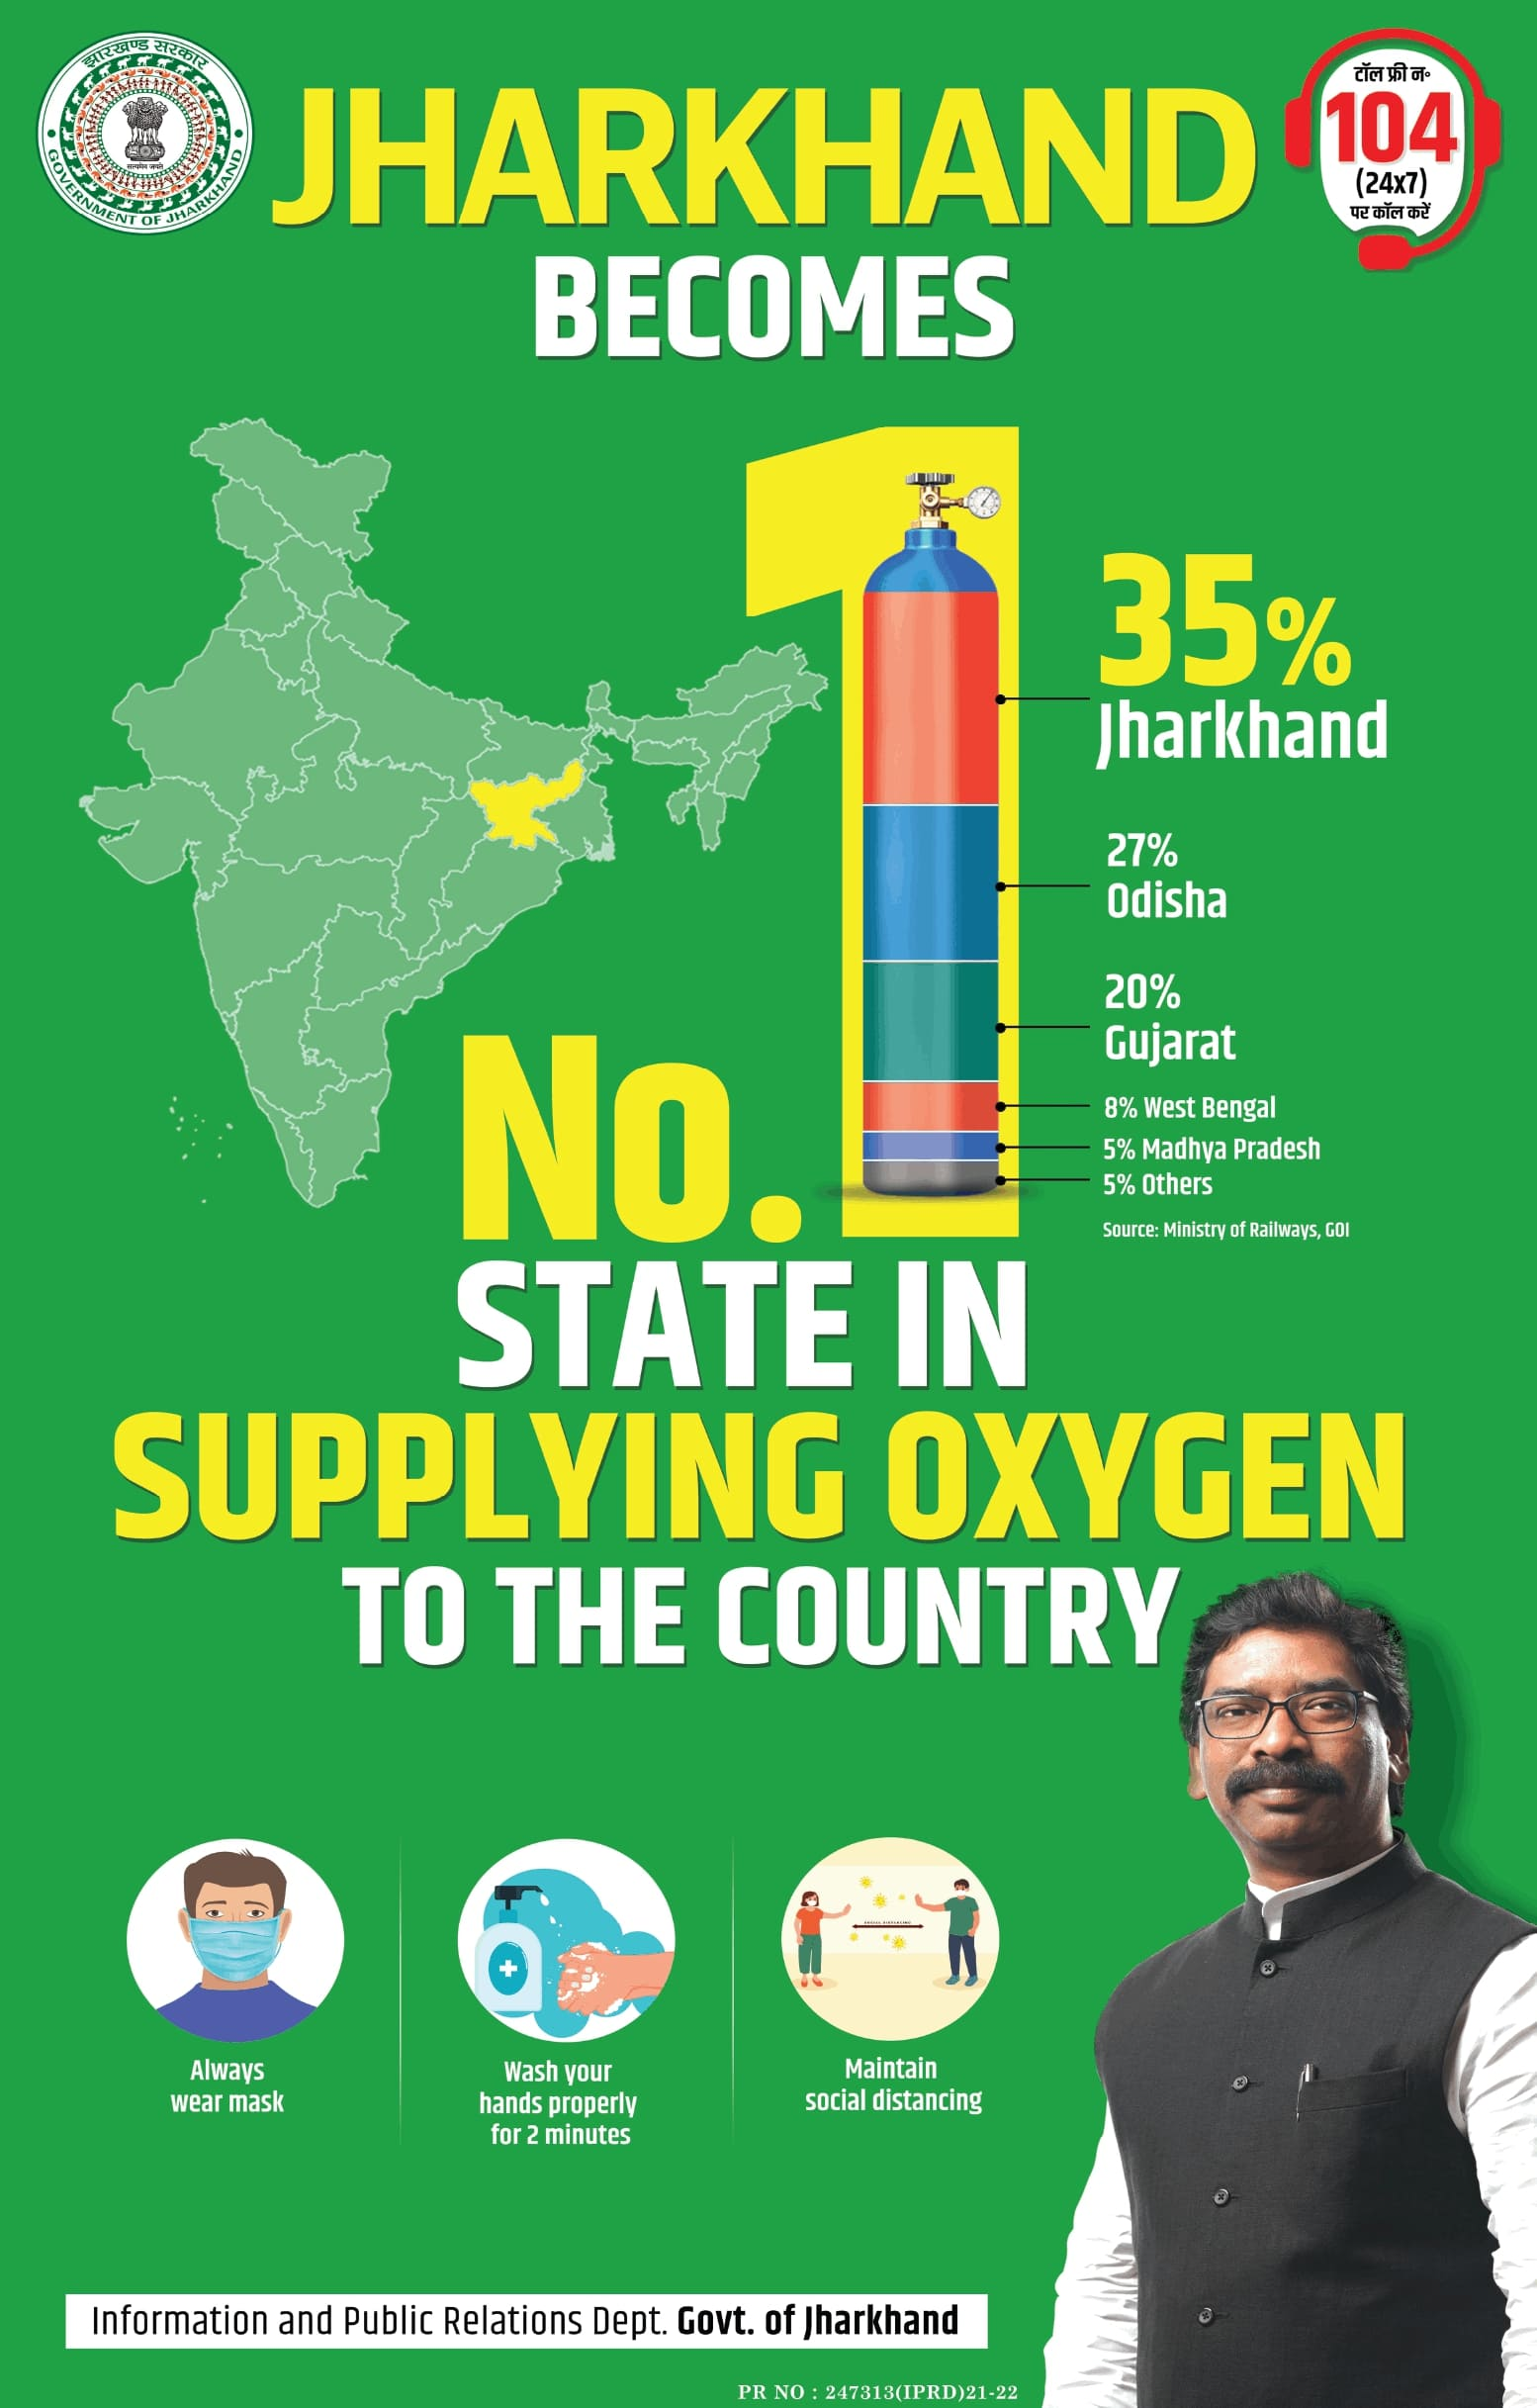 jharkhand-becomes-no-1-state-in-supplying-oxygento-the-country-ad-times-of-india-delhi-03-06-2021